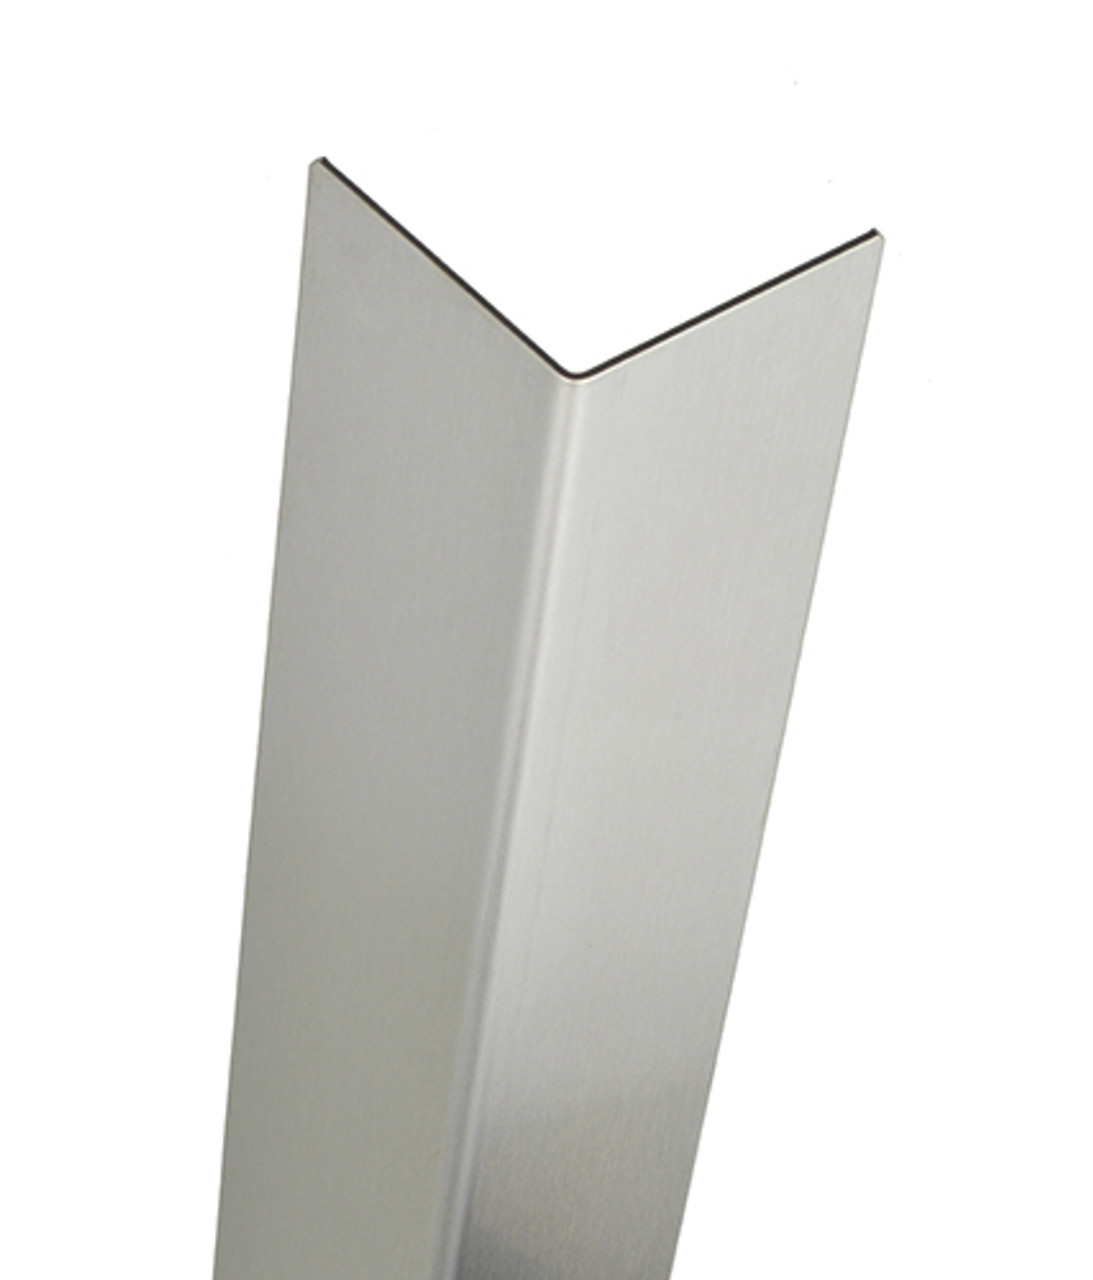 """1.5/"""" x 1.5/"""" x 8/"""" x 1//4/"""" Wall 304 Stainless Steel Angle"""